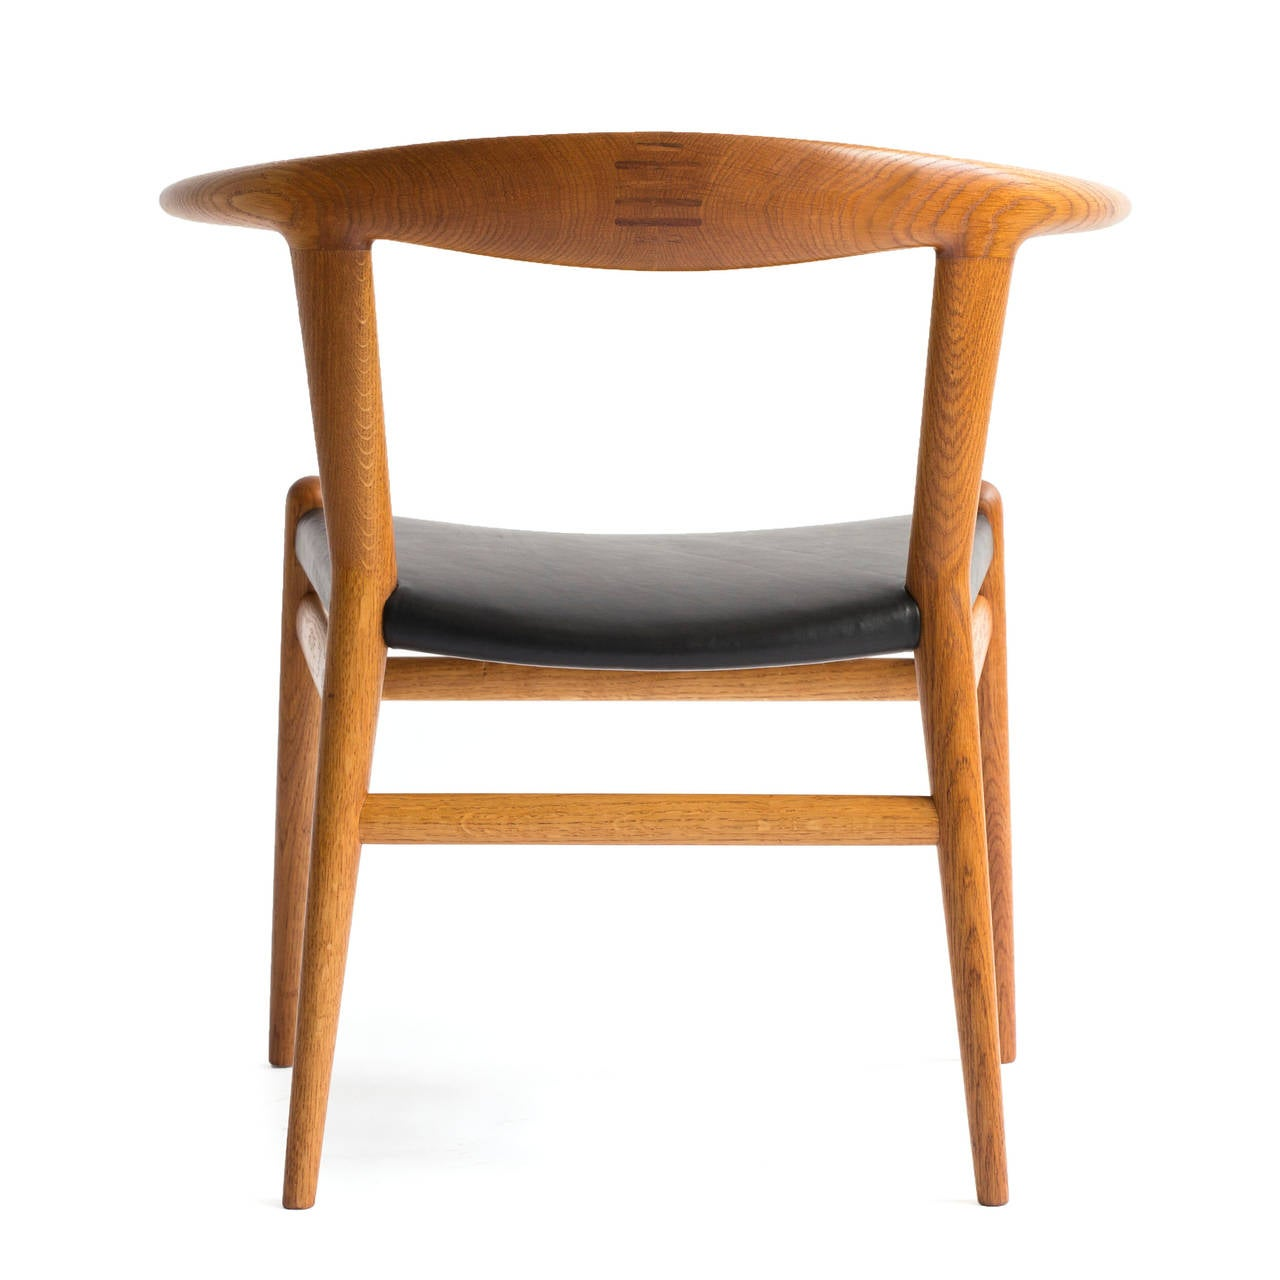 Hans J. Wegner 'Bull Chair' 5